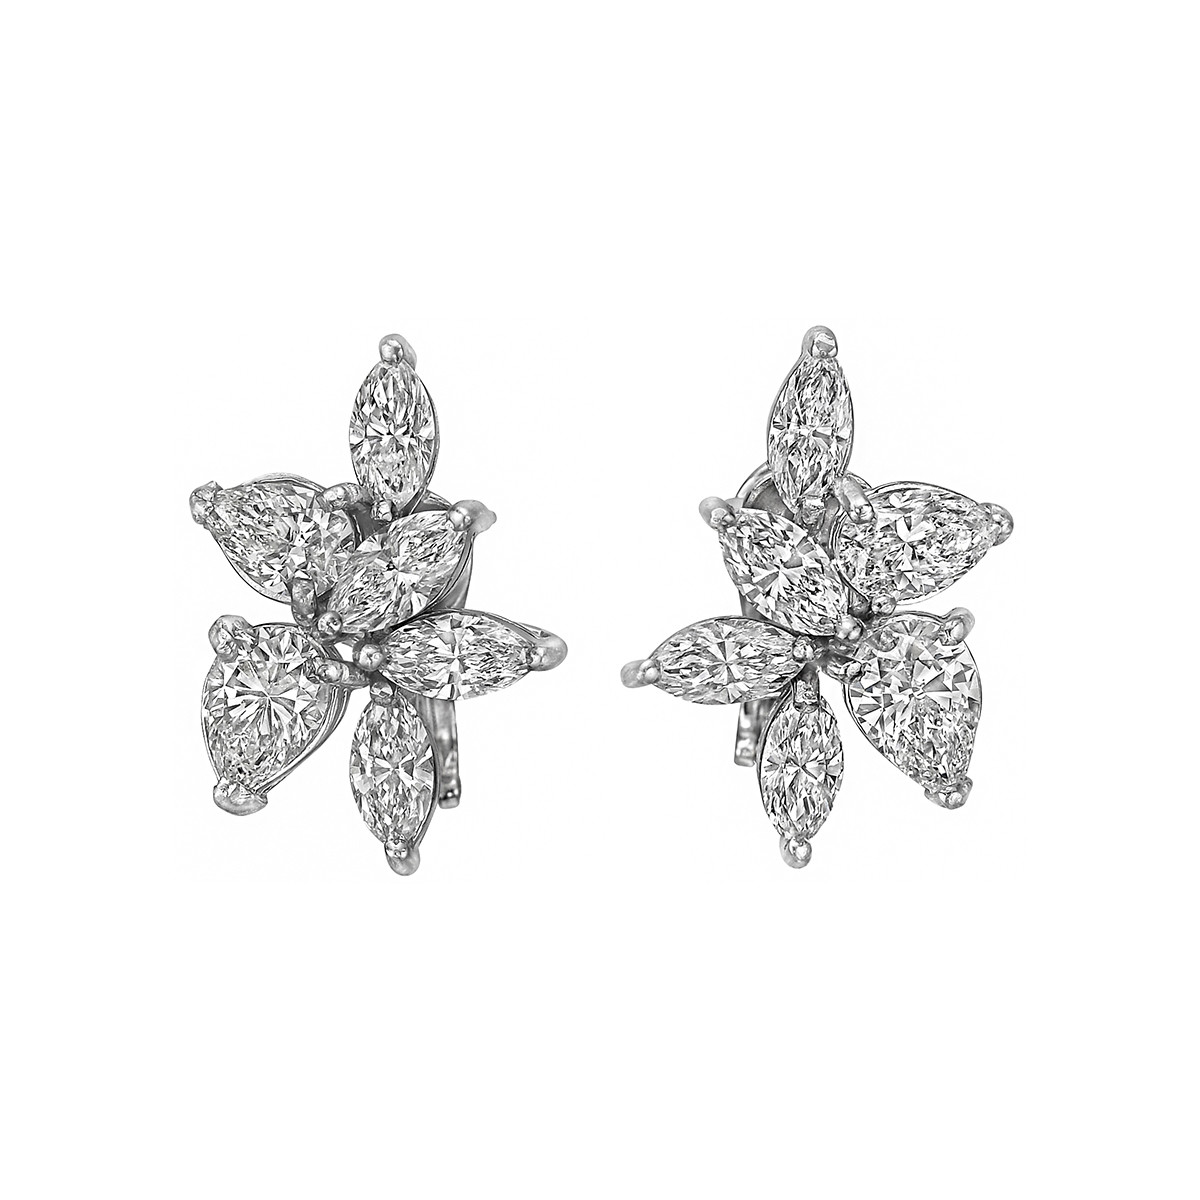 Pear & Marquise Diamond Cluster Earrings